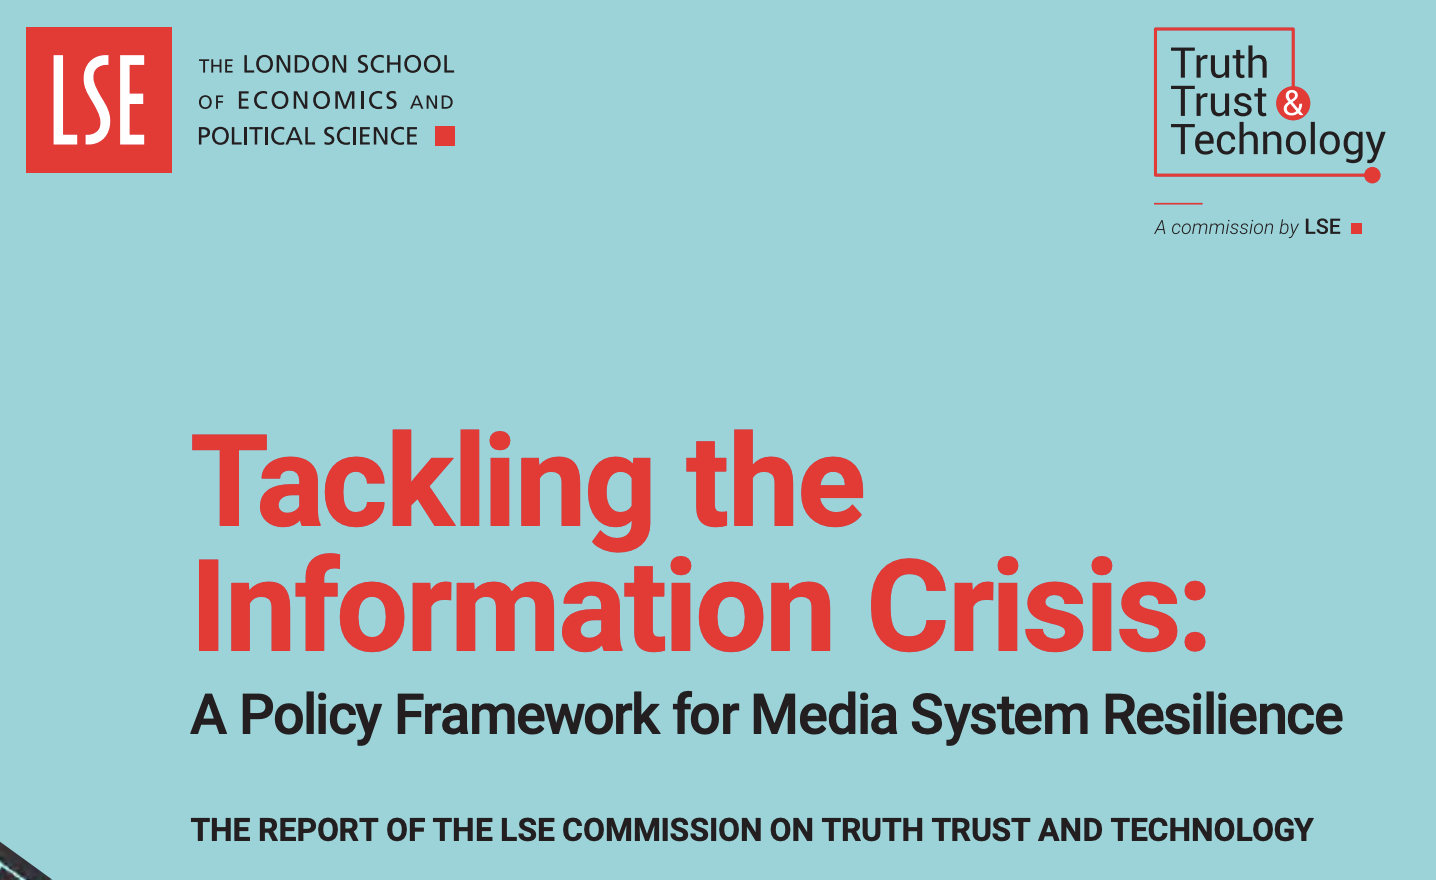 Tackling the Information Crisis: A Policy Framework for Media System Resilience